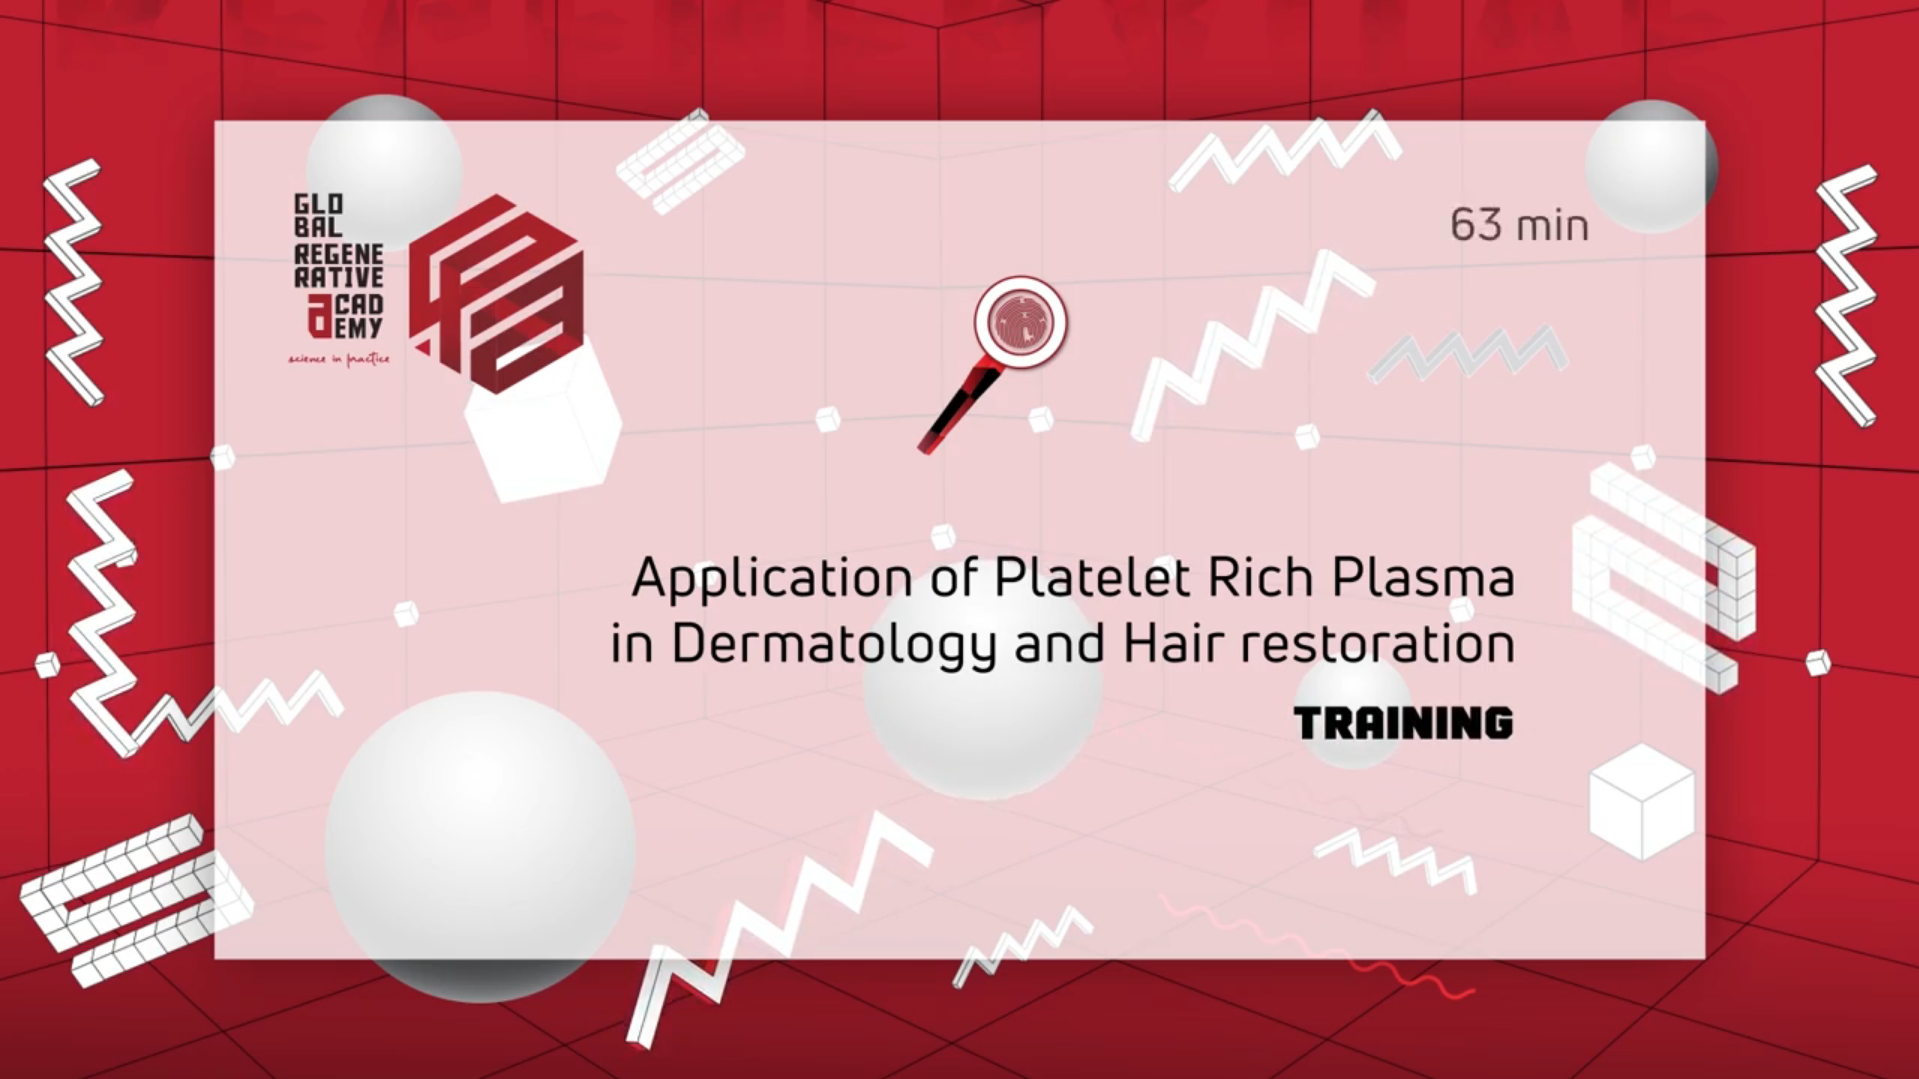 The application of platelet rich plasma in Regenerative Dermatology – manipulation and demonstration